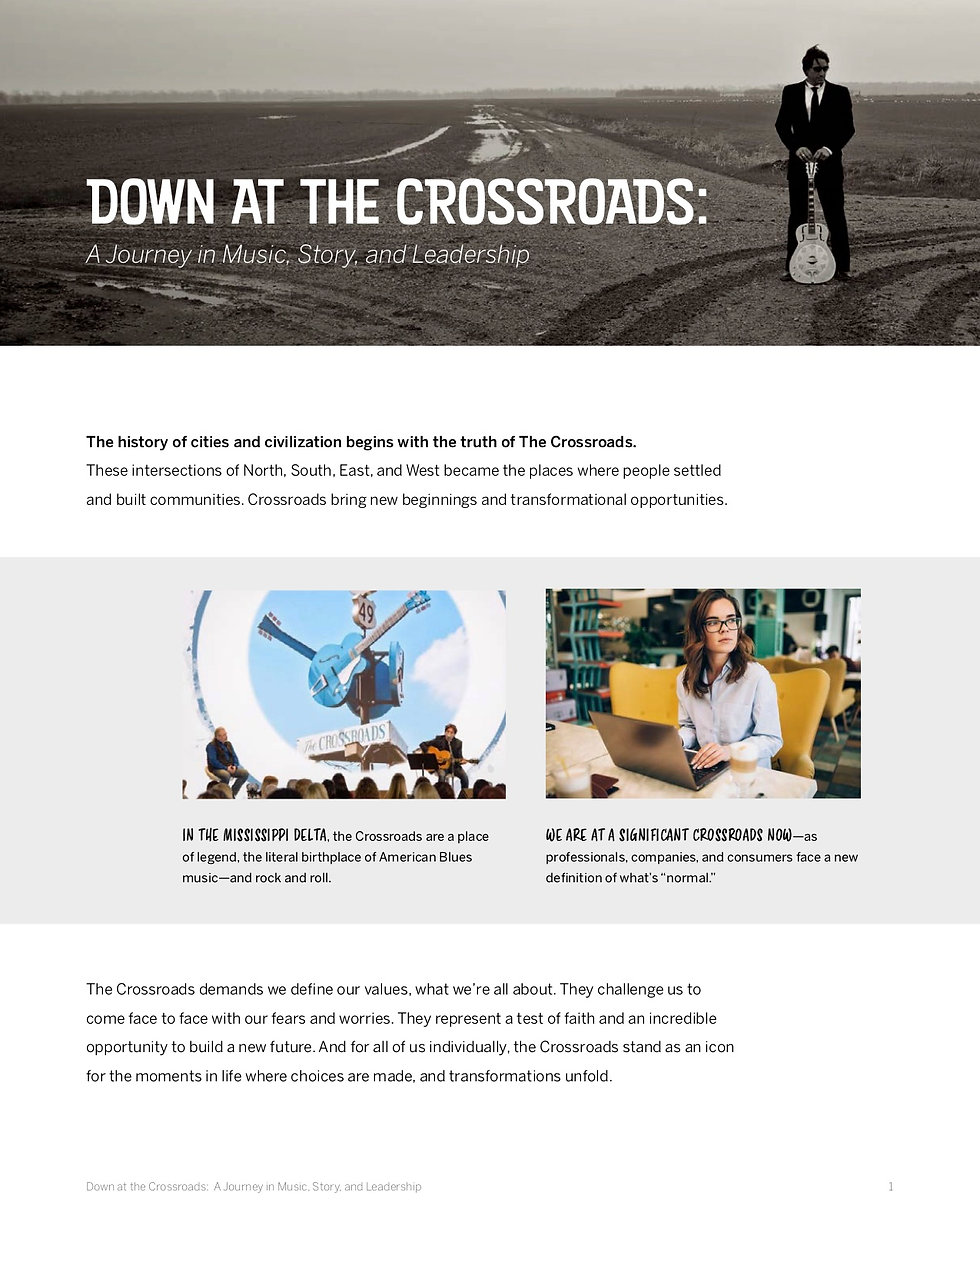 Down-at-the-Crossroads-200405-1030.jpg